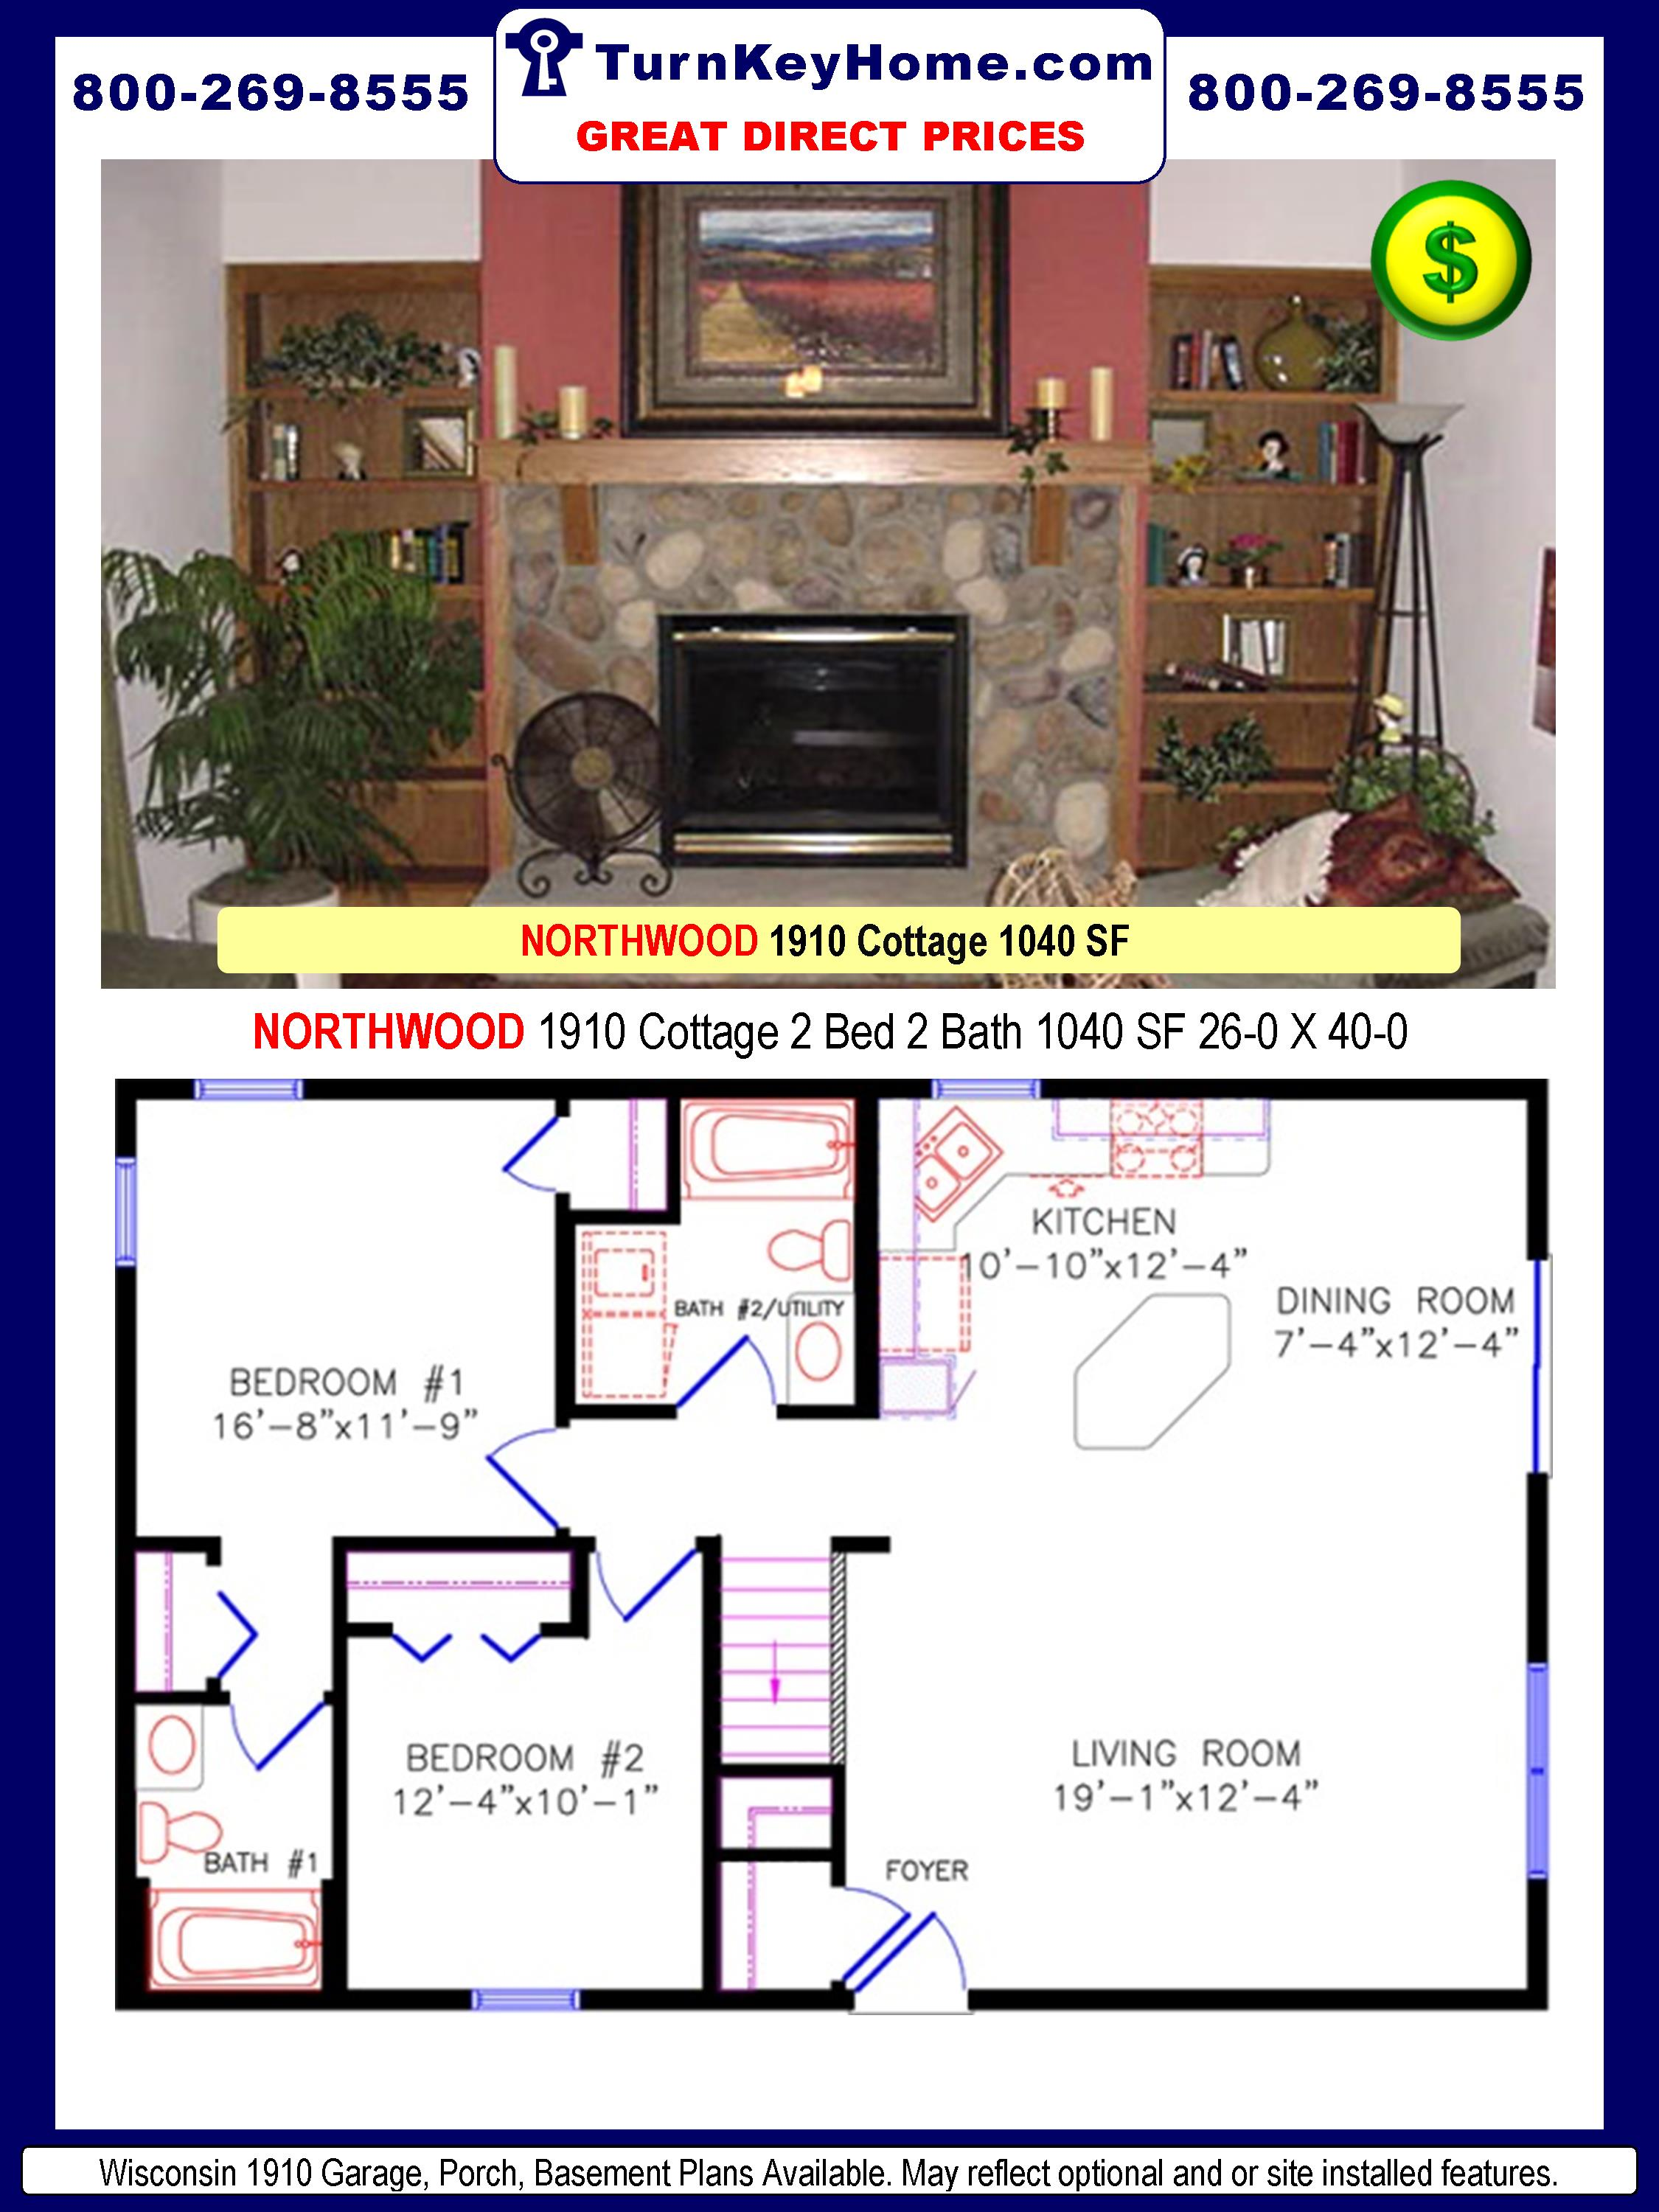 WISCONSIN HOMES NORTHWOOD 1910 Cottage 2 Bed 2 Bath 1040 SF 26-0 X 40 ...